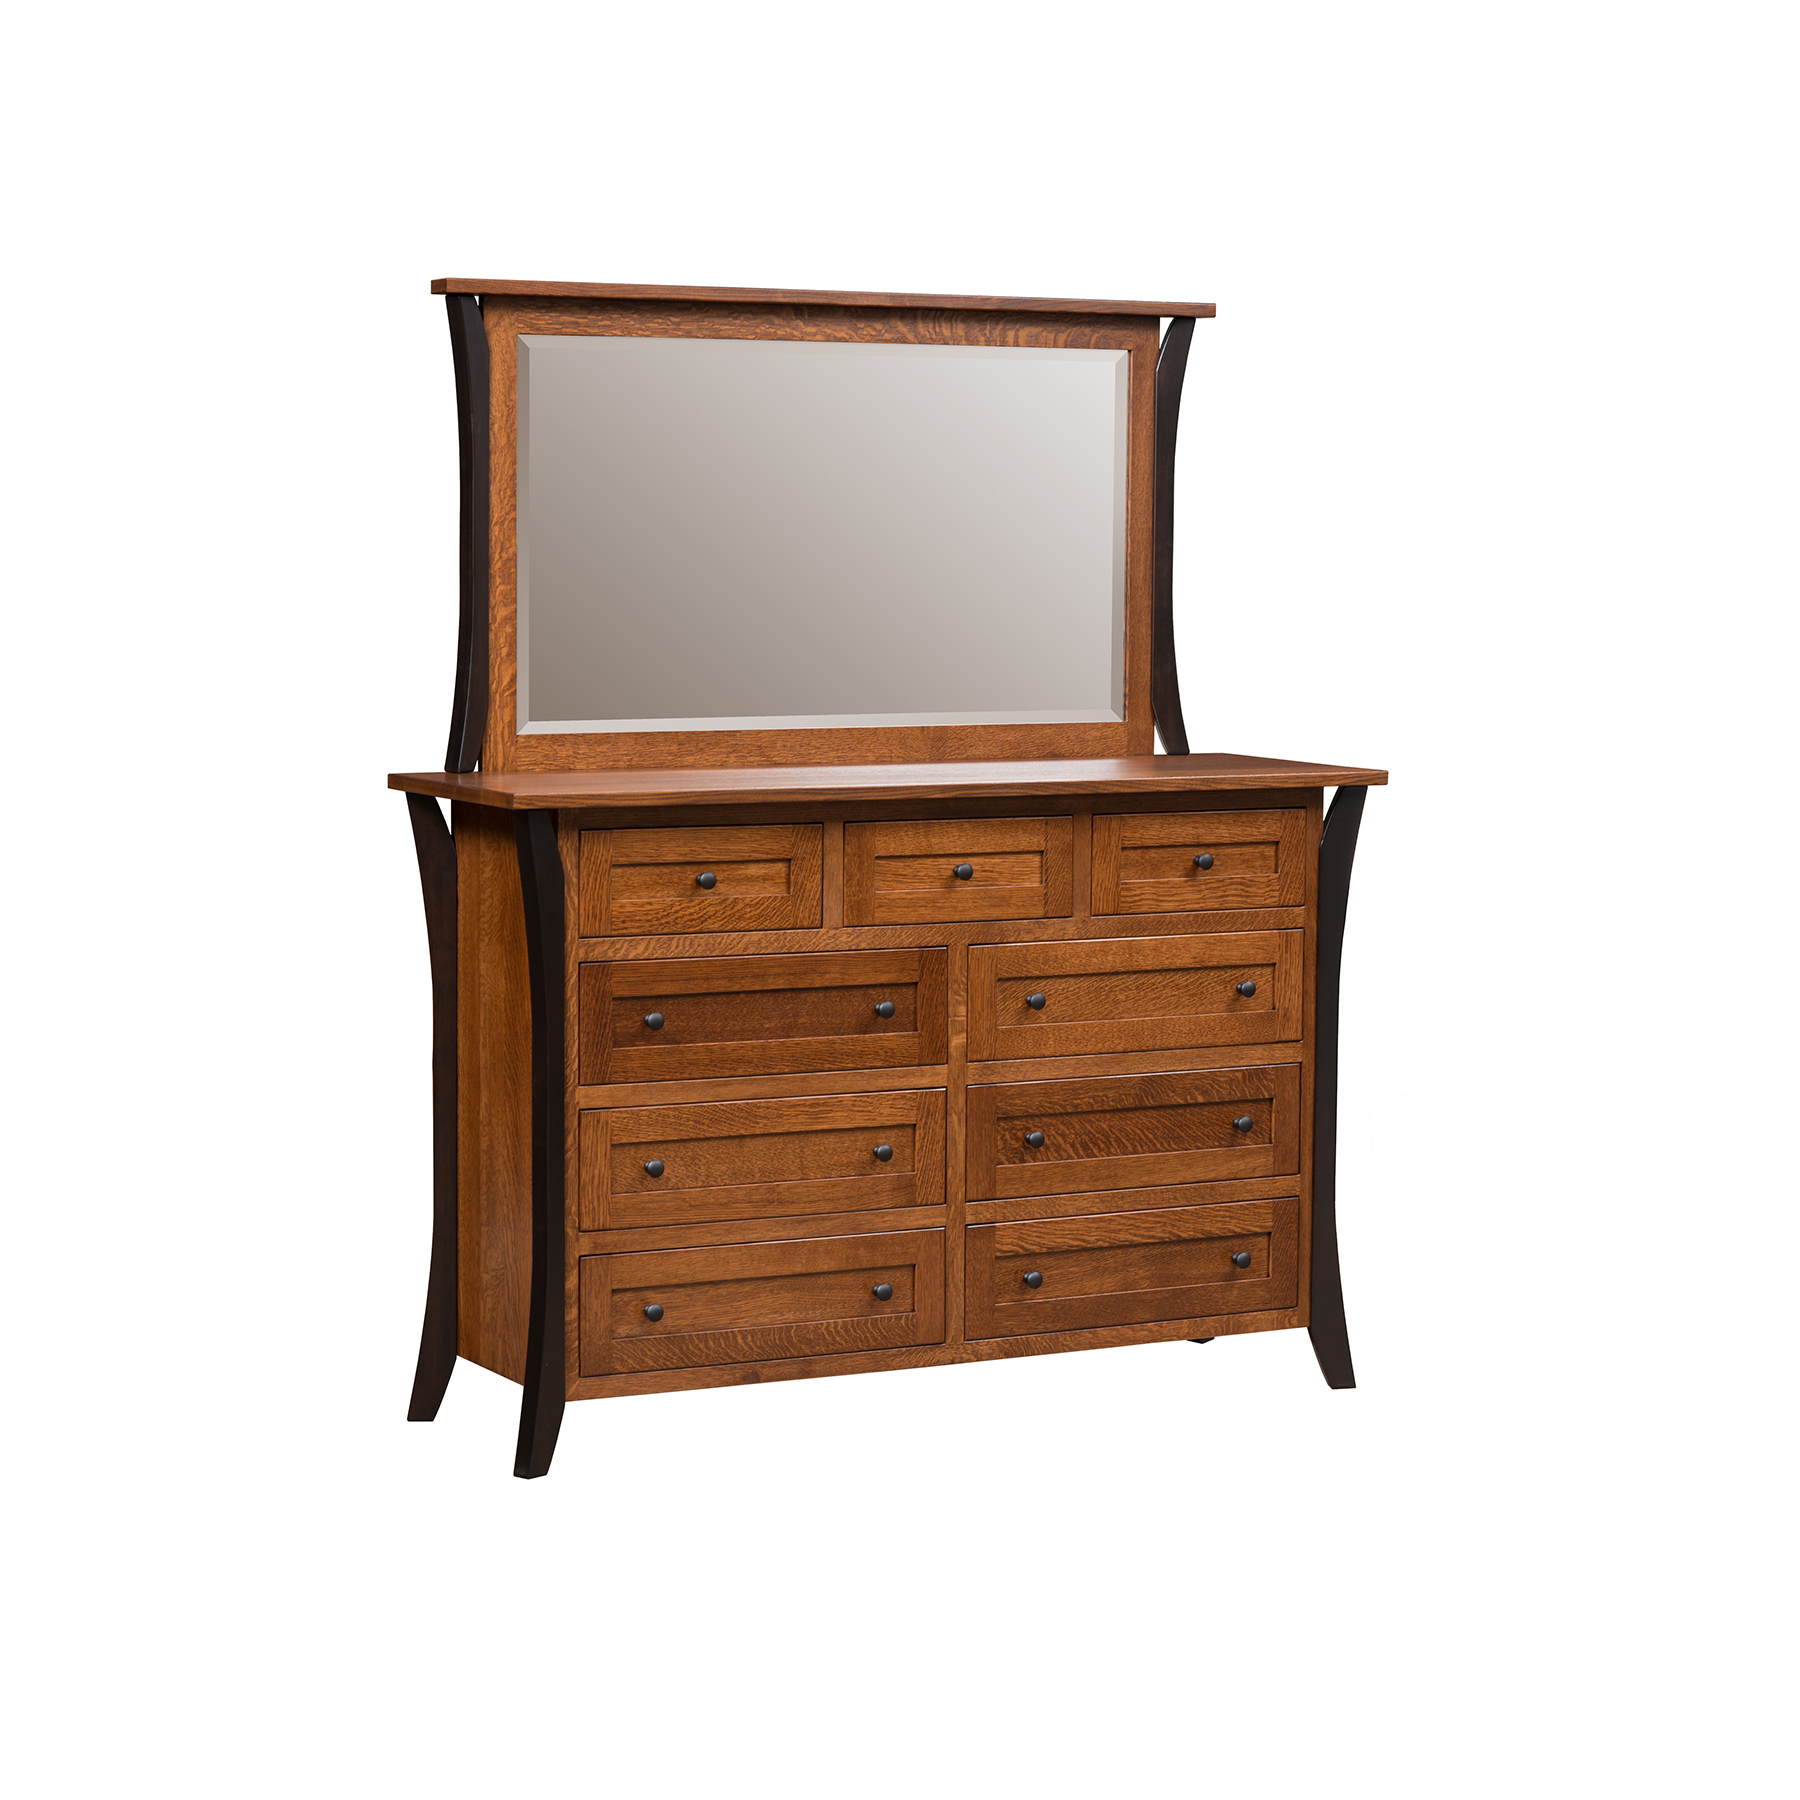 Double Mule Dresser and Mirror